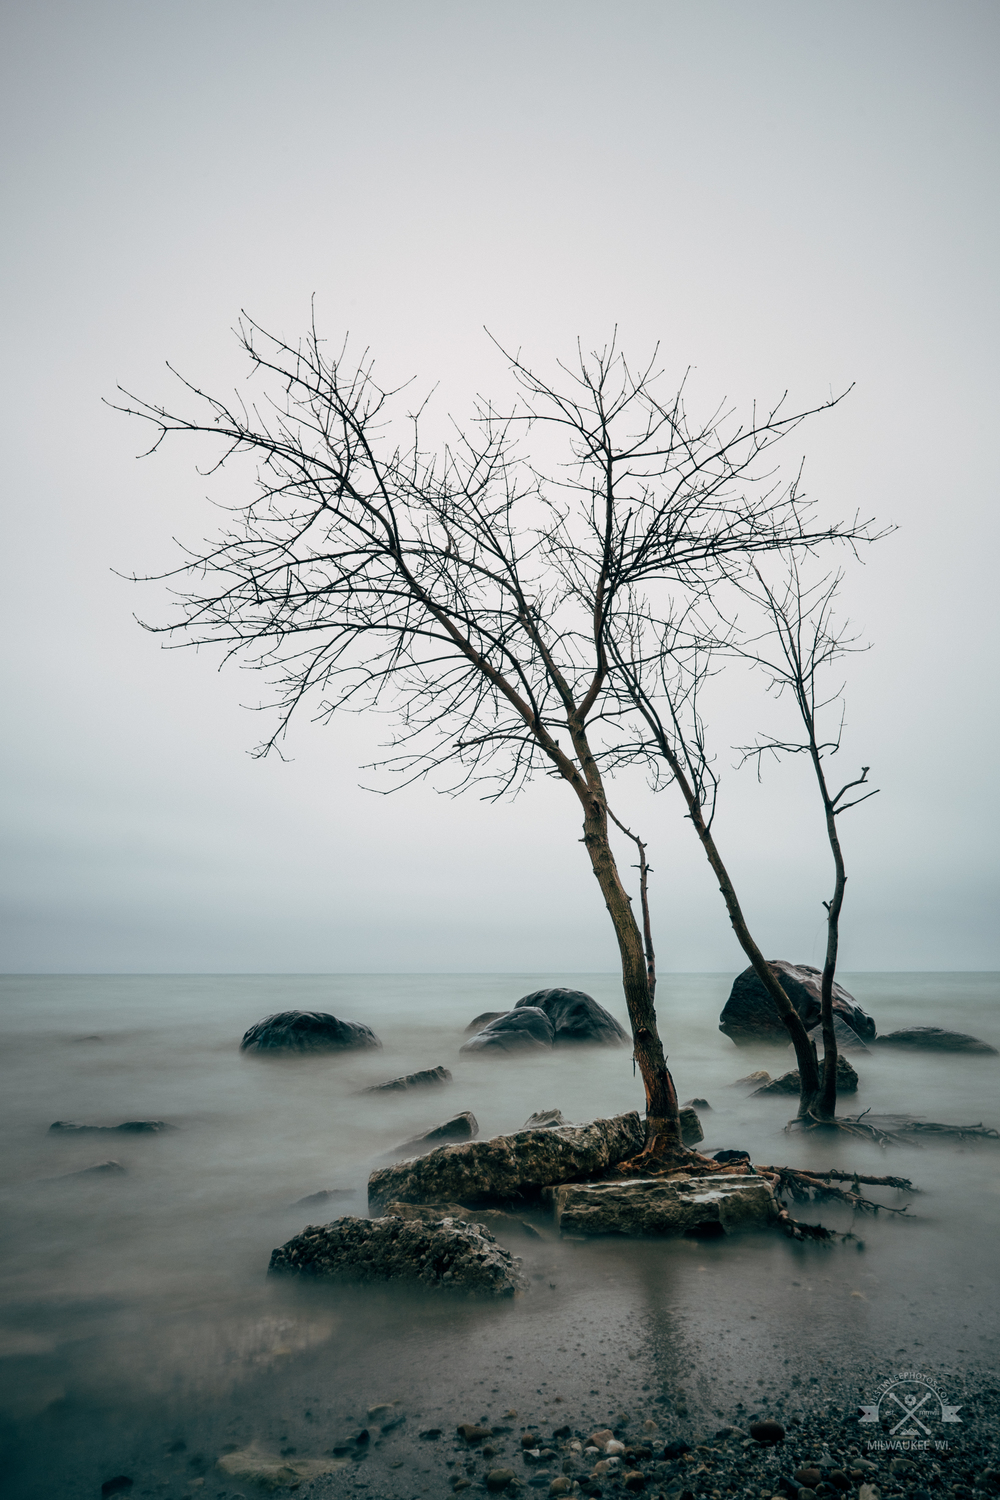 FujiFilm X-T1  XF14mm  ISO 200  f/11  15.0sec.  Lee Filters Big Stopper